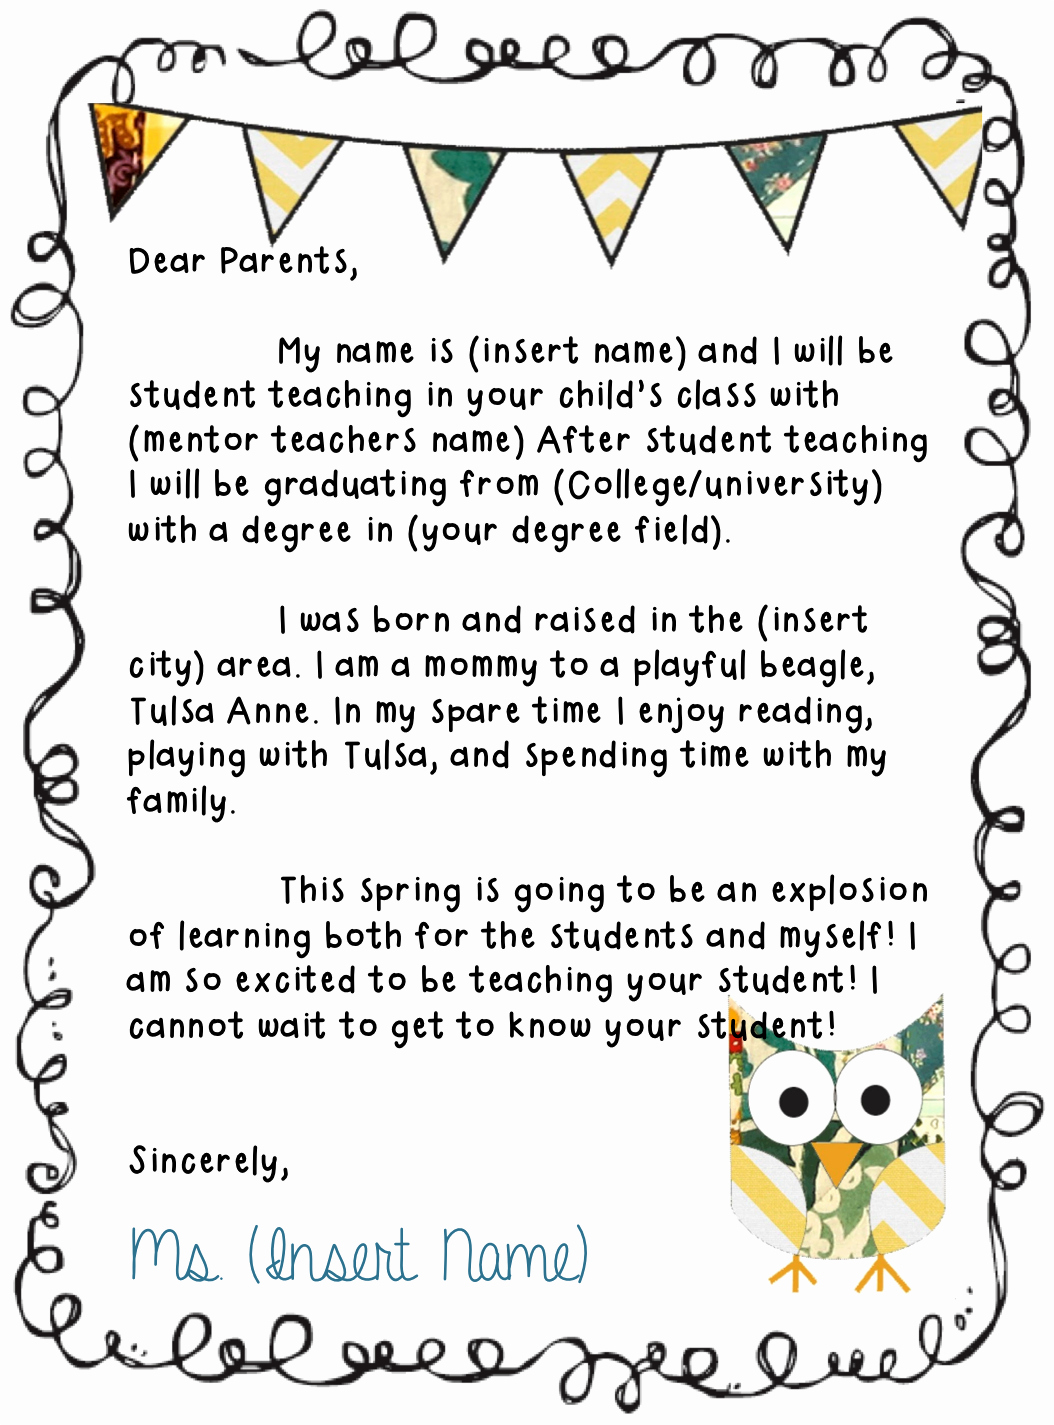 Letter to Parent Template Awesome Needing to Make A Letter to Send to Parents to Introduce